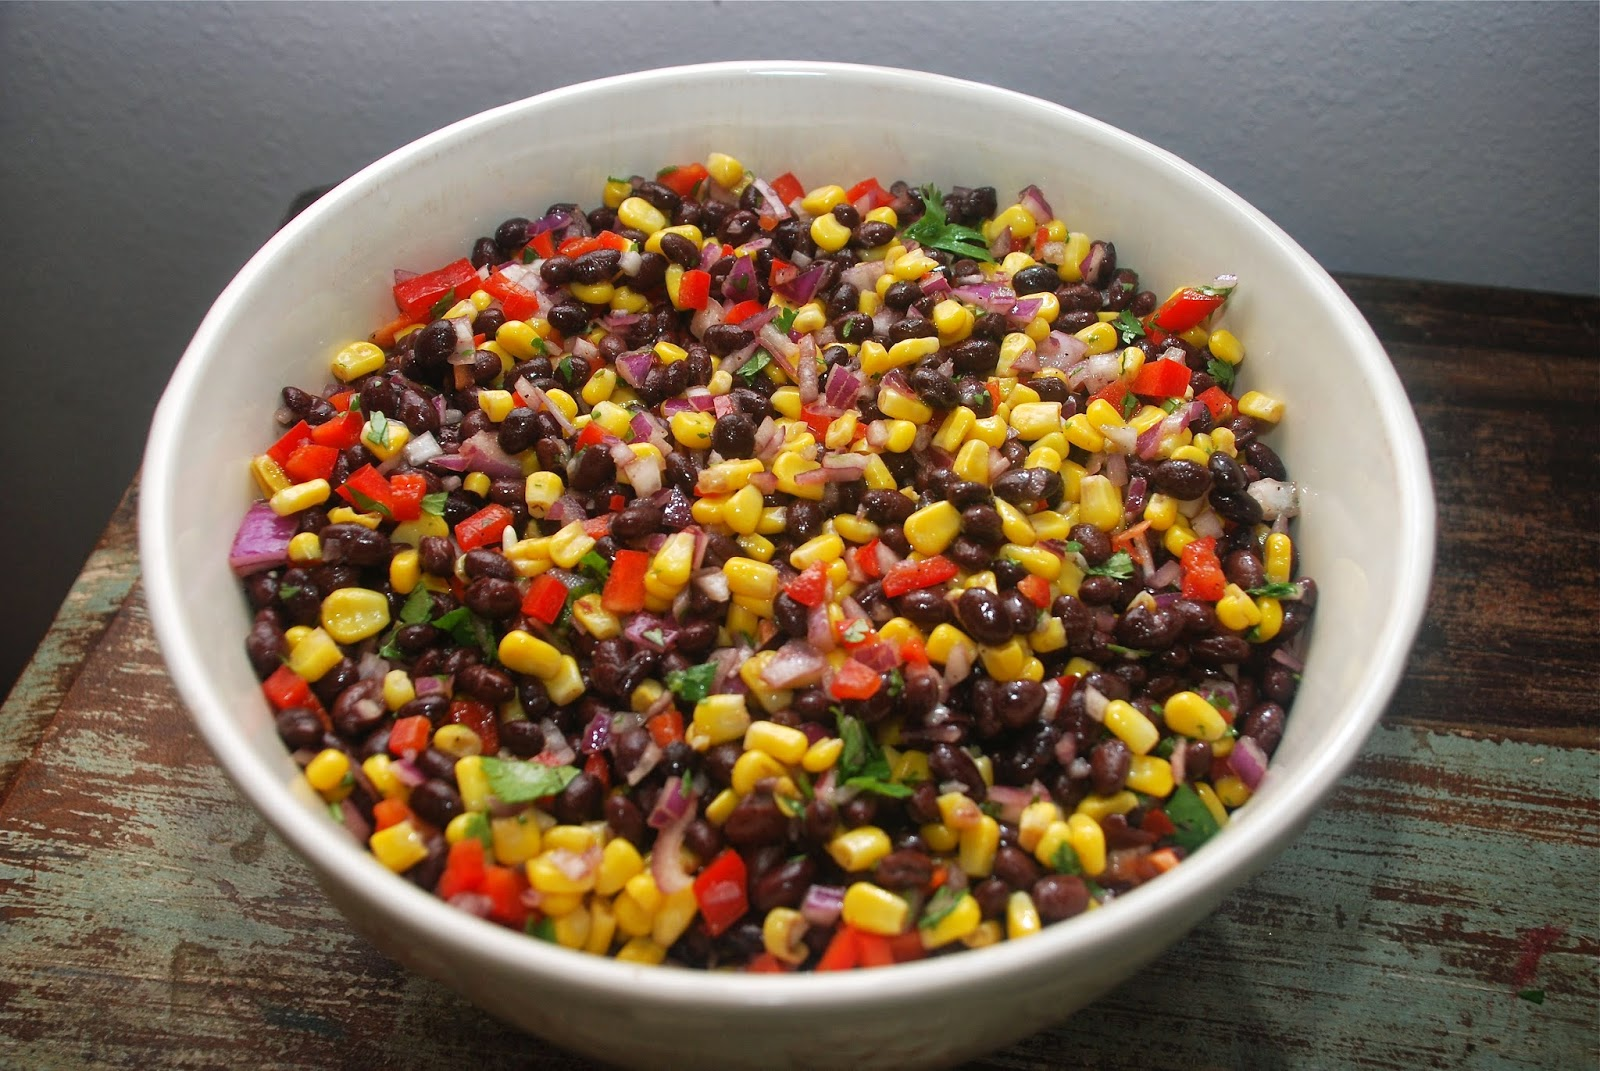 Tomatoes on the Vine: Southwestern Black Bean and Corn Salad